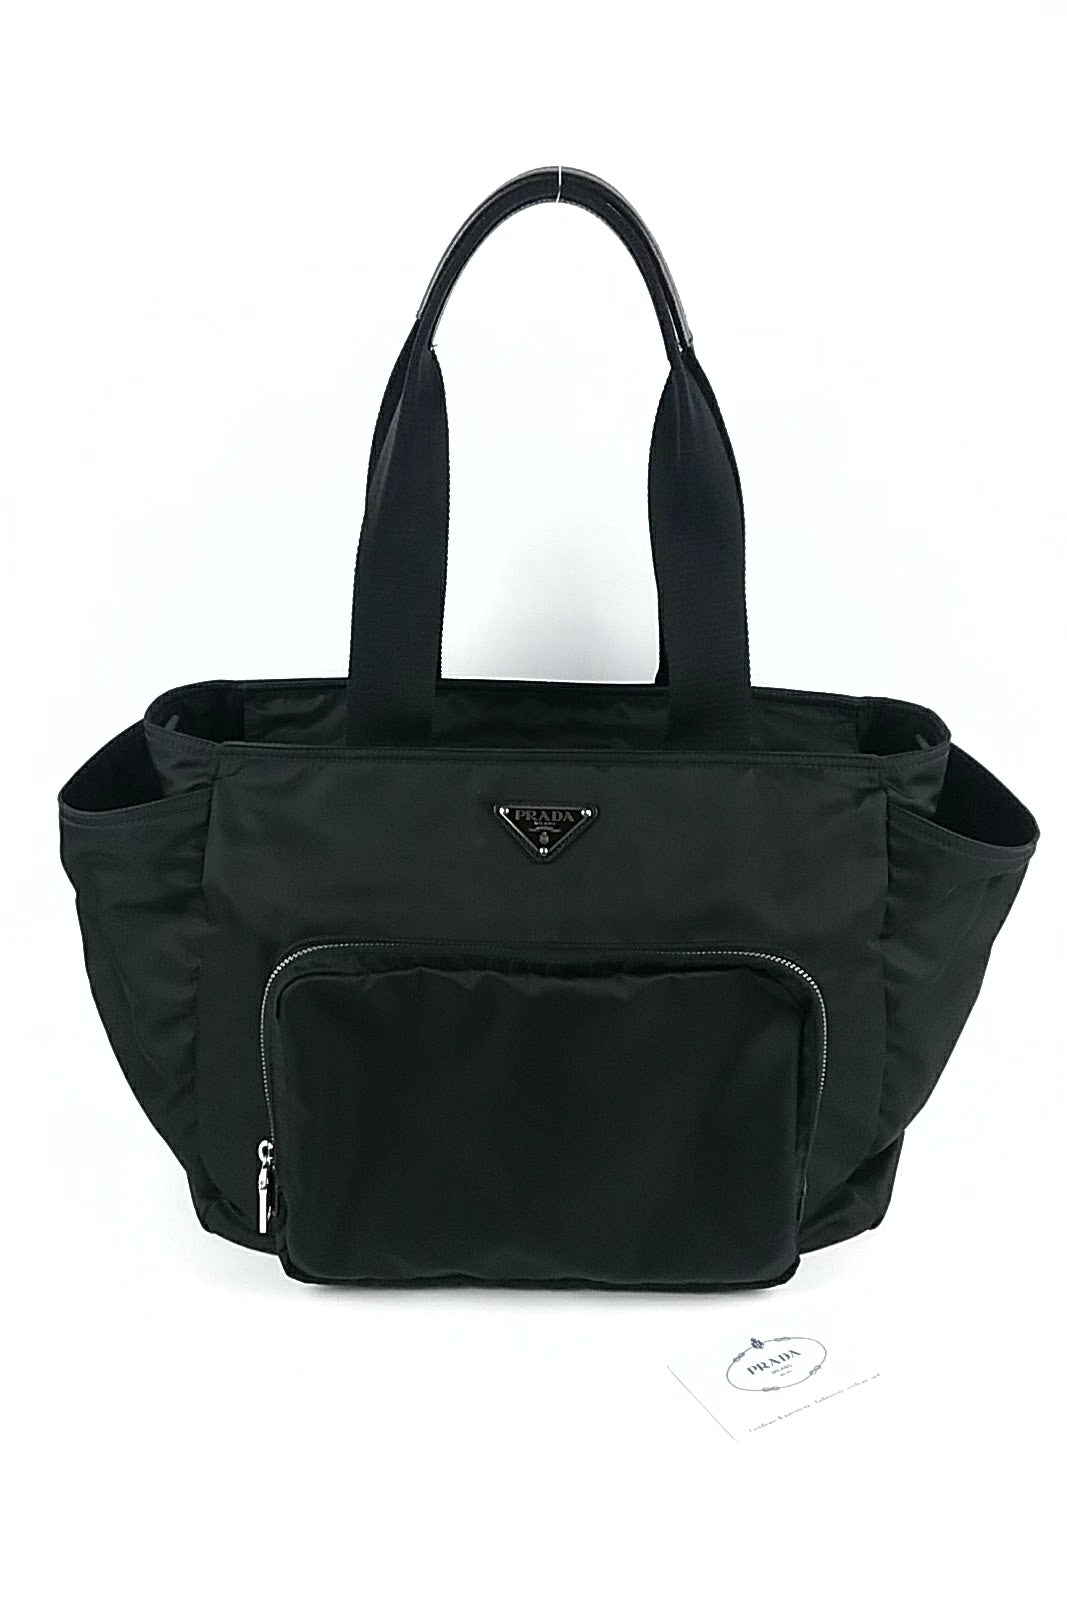 Black Nylon Diaper Bag